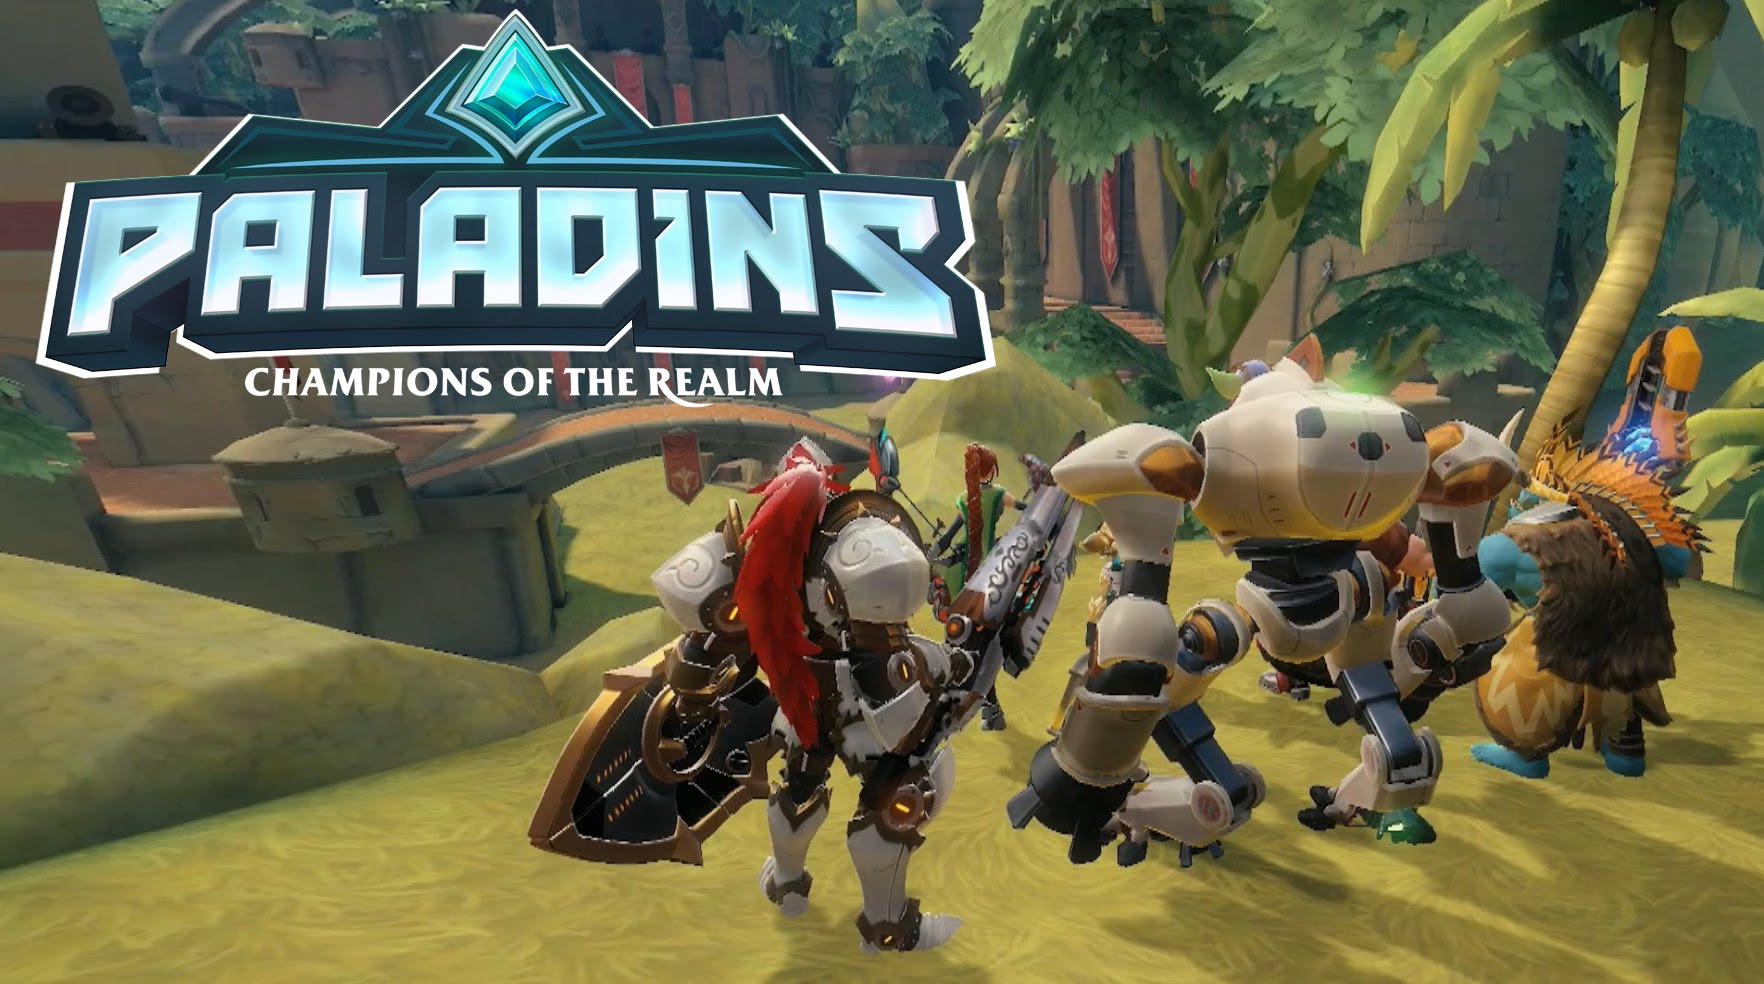 What It's Like Playing Paladins. The Overwatch Clone